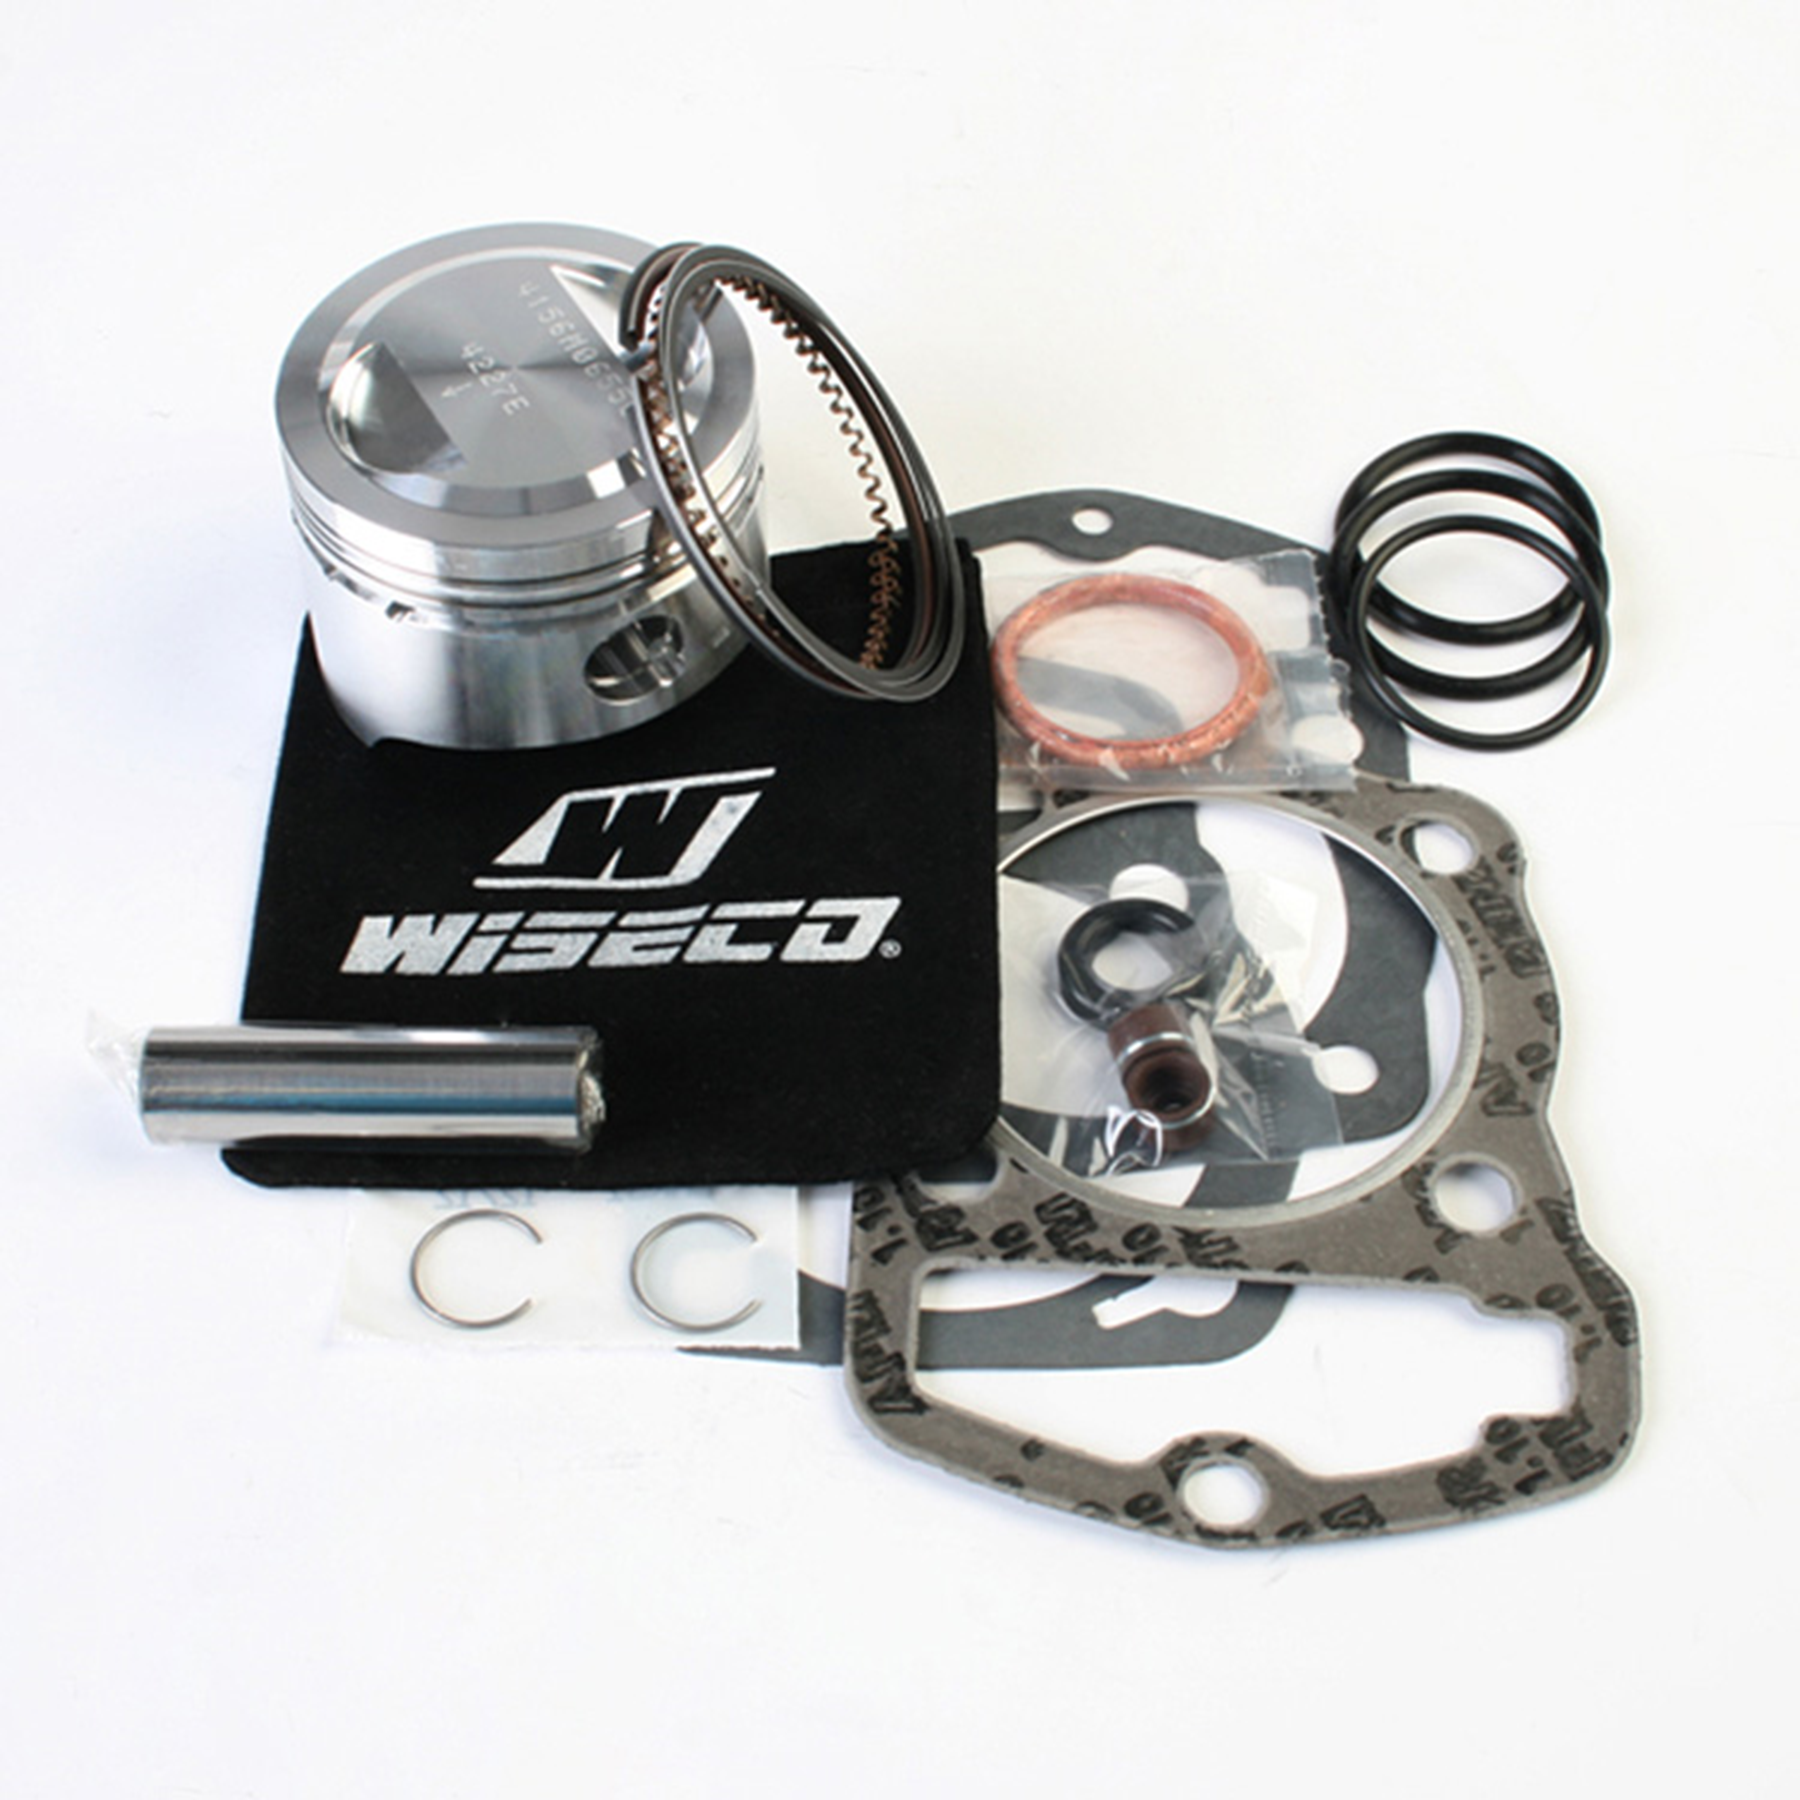 Wiseco High-Performance Complete Top End Kits 65.5mm PK1001